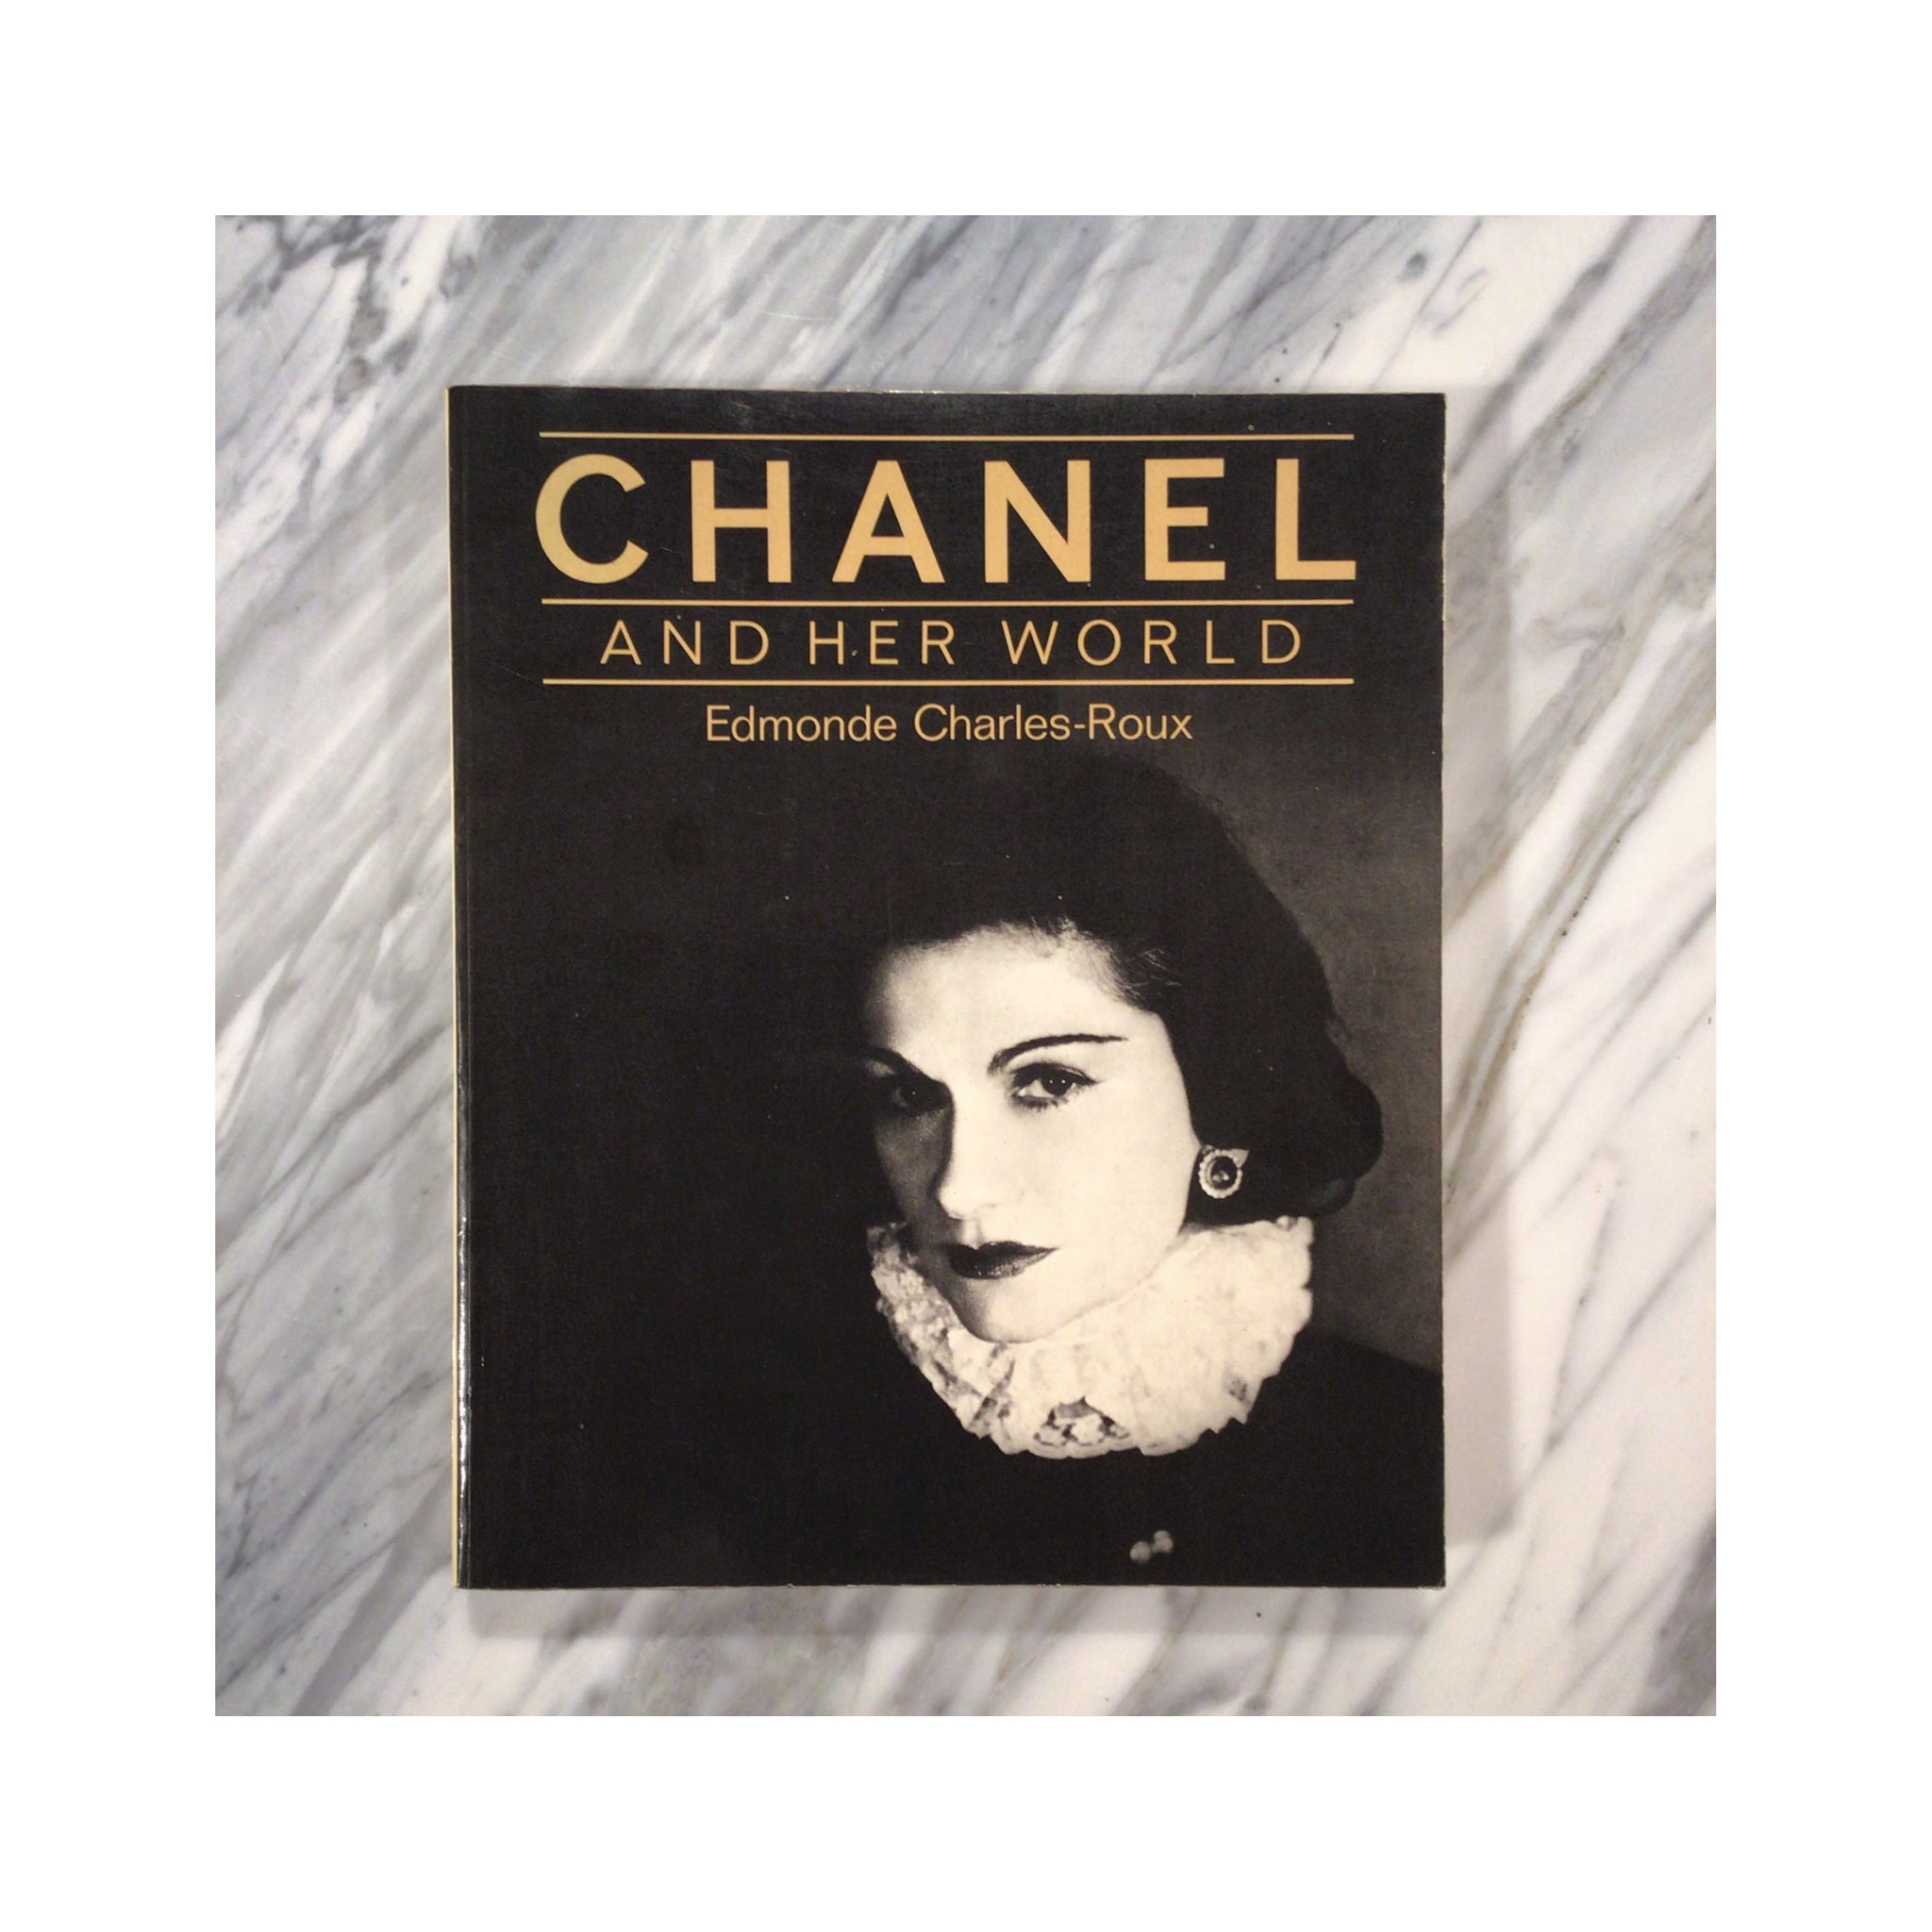 Chanel And Her World - Edmonde Charles-Roux